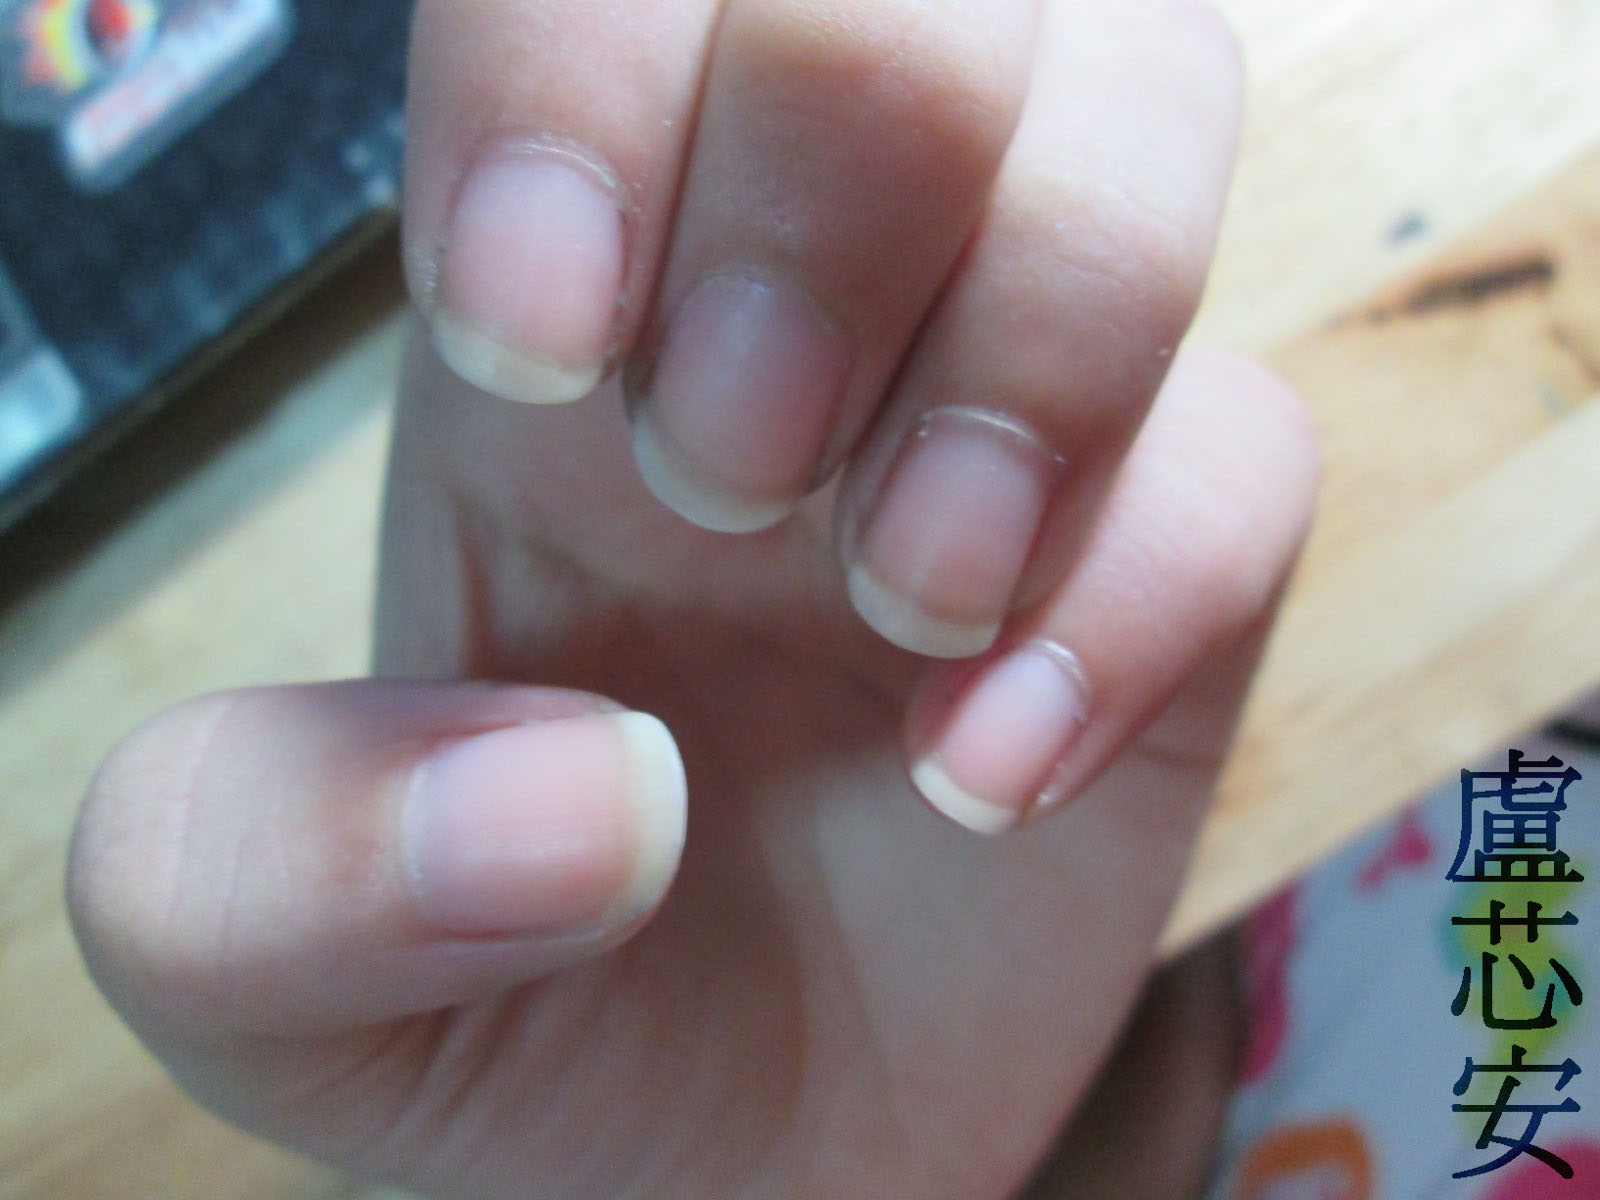 Nail Polish Discolored Nails - Creative Touch